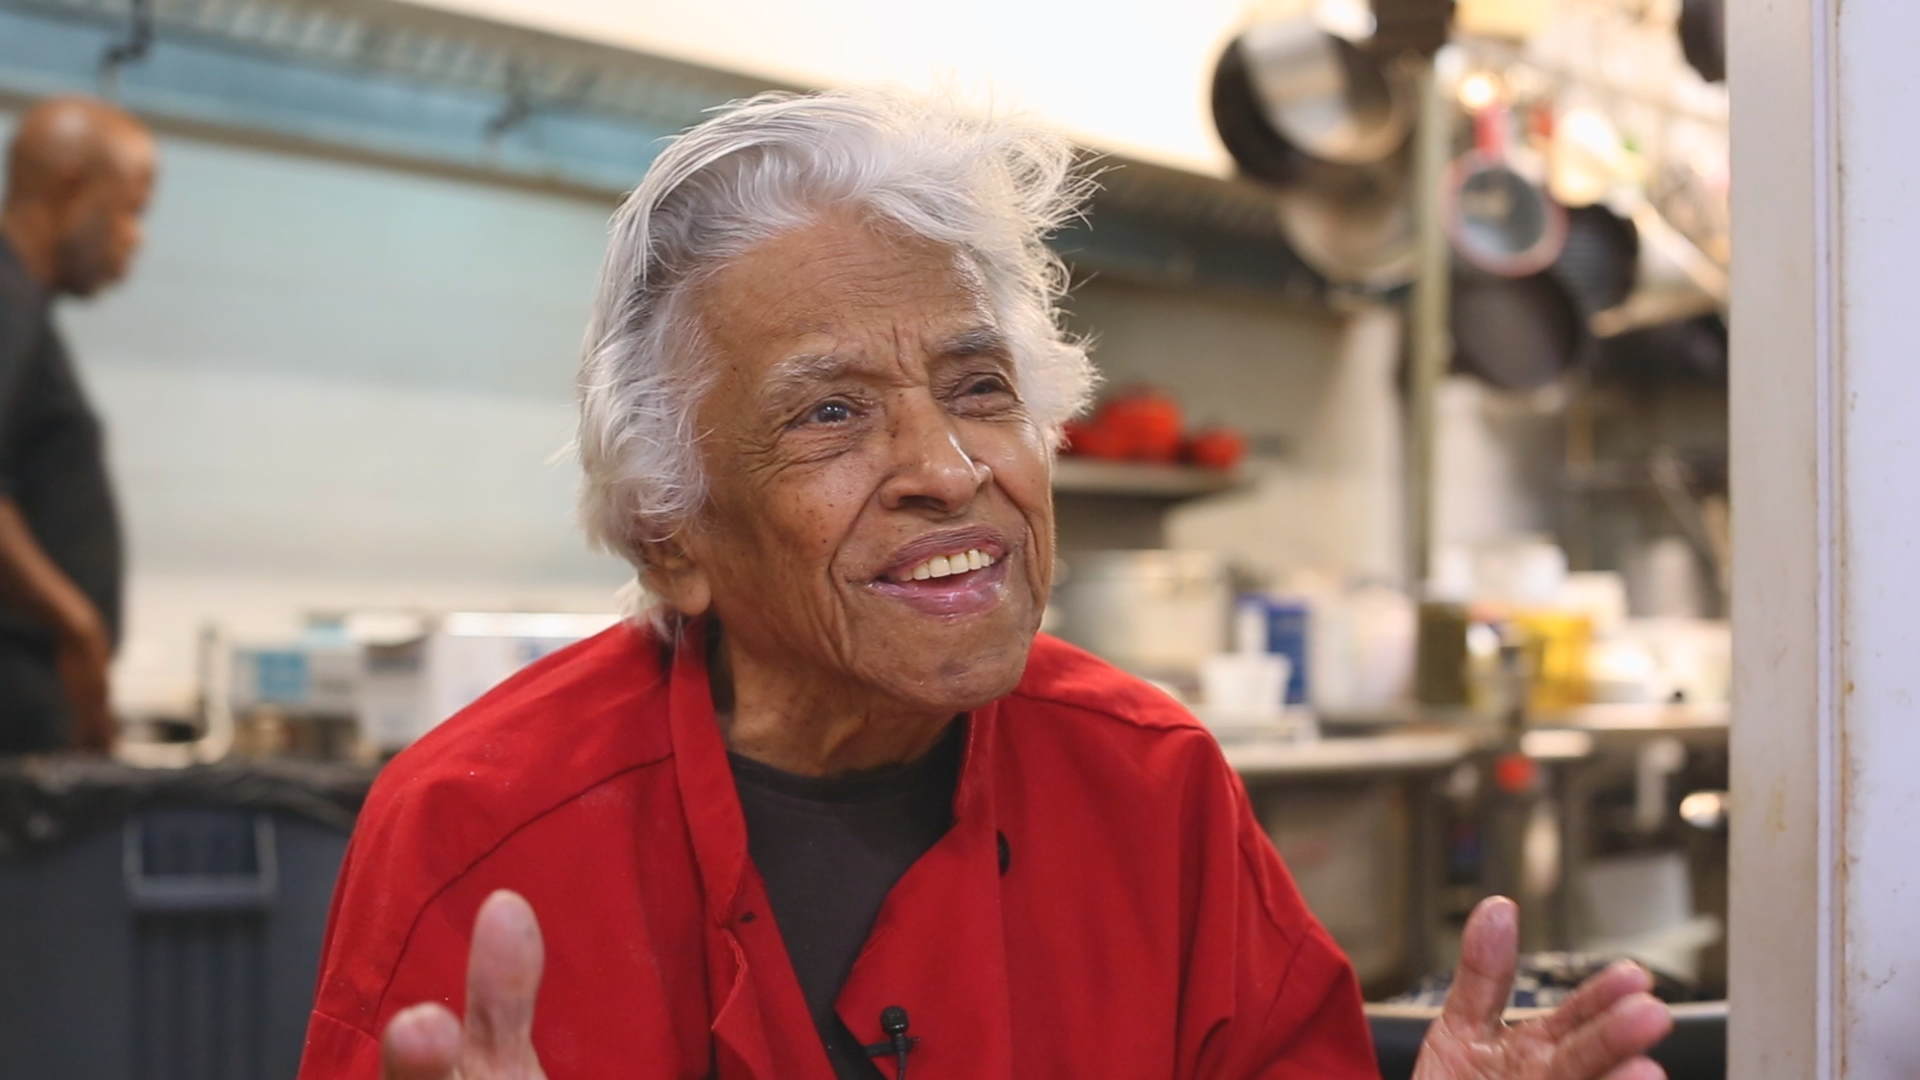 leah chase social pic 1.png